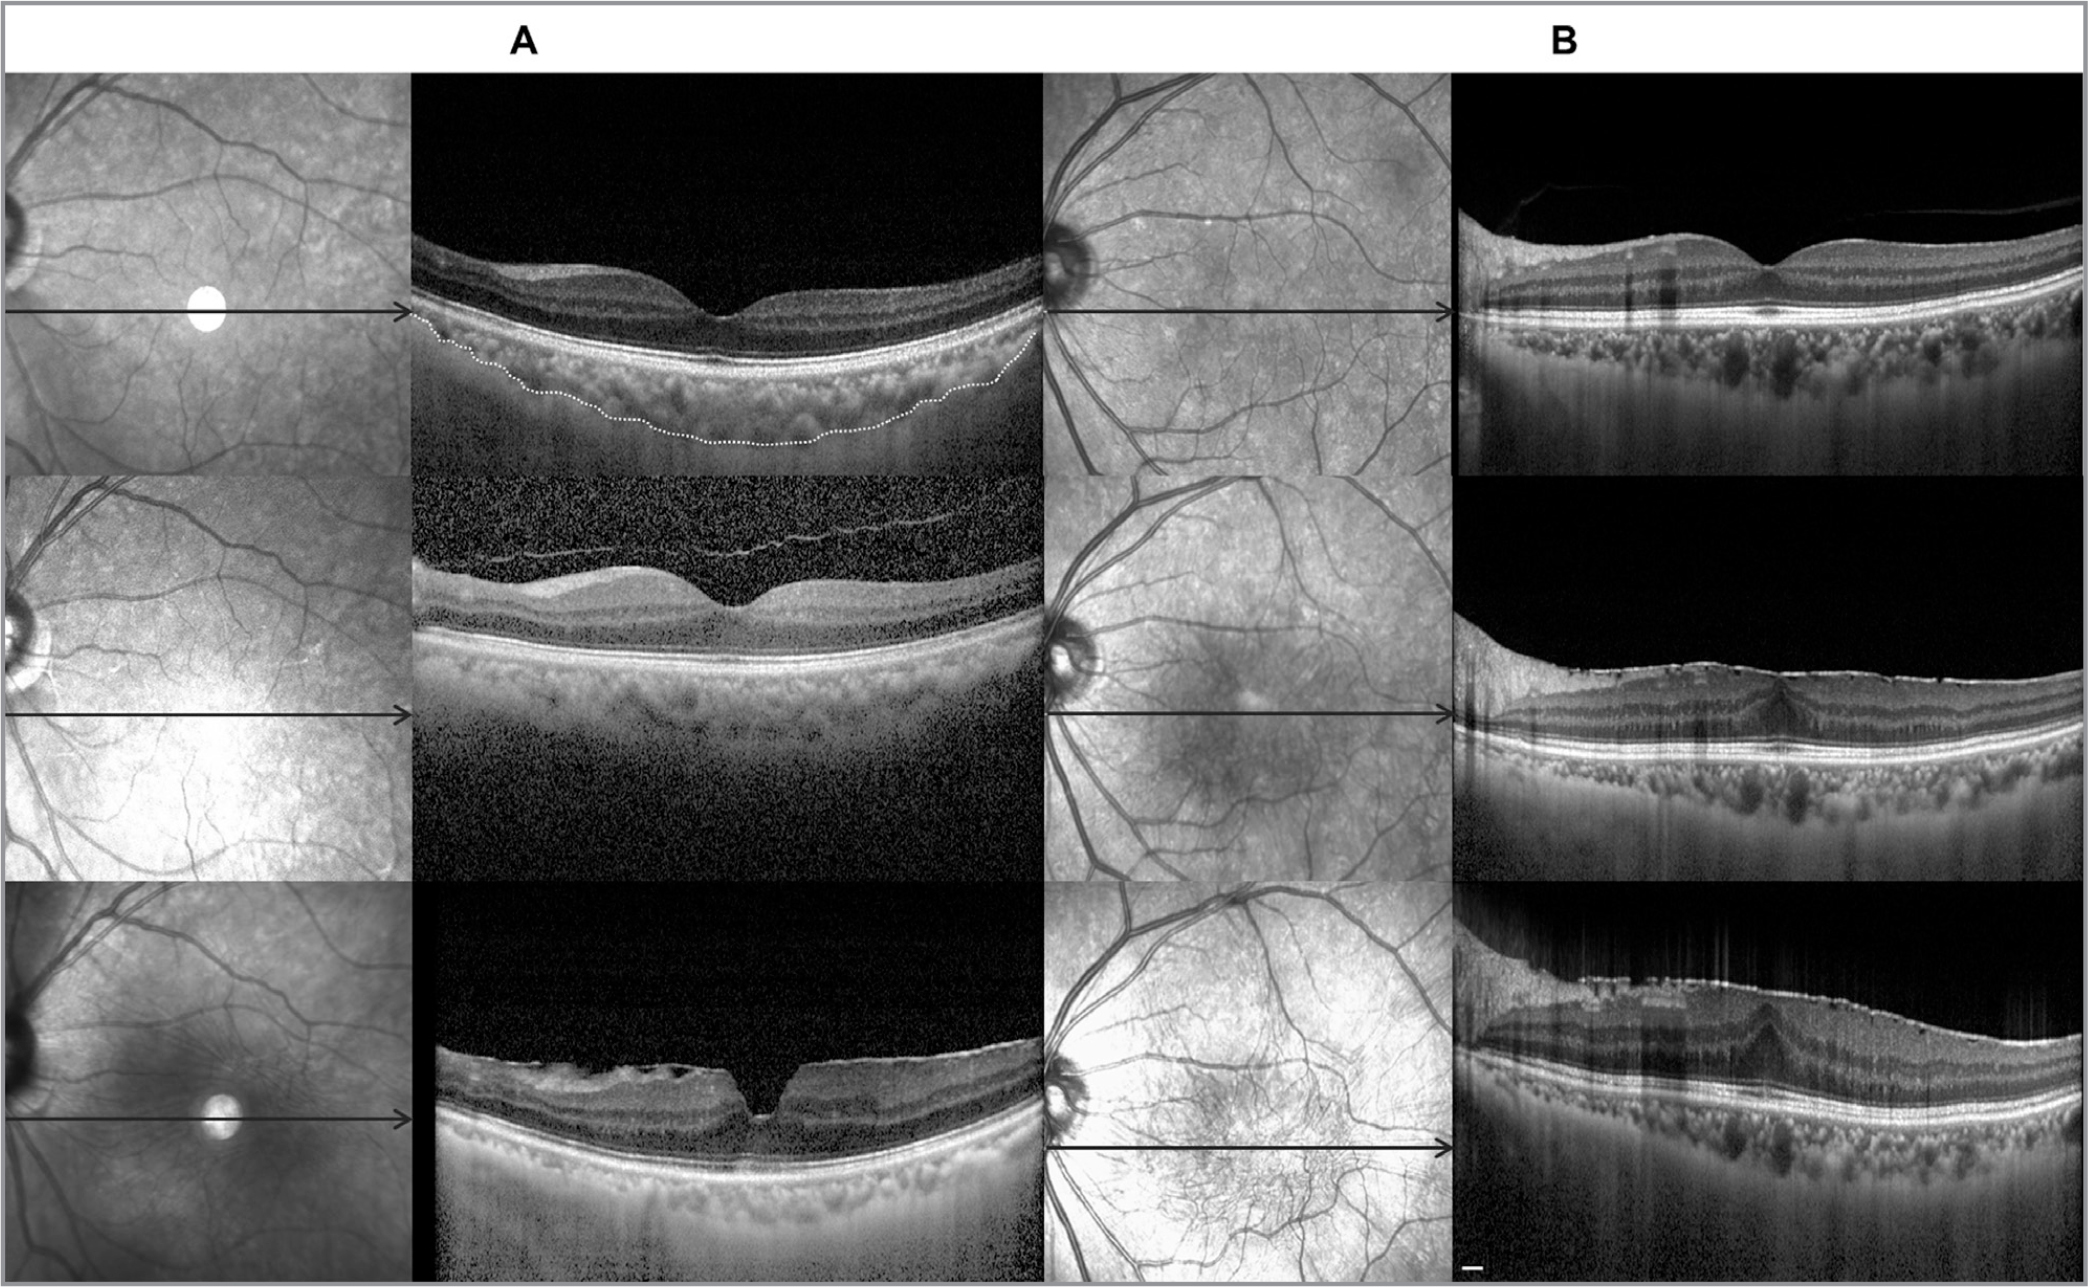 Changes of macular choroidal thickness in the patients with epiretinal membrane (ERM) development (new-onset) and progression by optical coherence tomography (OCT). Combination images of an en face infrared section and a horizontal enhanced depth B-scan of OCT. The average macular choroidal thickness was measured at 15 points with 500 μm intervals from the horizontal scan. (A) A 59-year-old female patient with new-onset and progression of ERM in the left eye. The macular choroidal thickness was 250.0 μm at baseline and decreased significantly to 124.6 μm after 34 months. The choroid-scleral boundary was indicated by the dotted line in the uppermost image. (B) A 65-year-old female patient with marked progression of ERM in the left eye. During the 39-month follow-up period, choroidal thickness was significantly reduced, to approximately 30.4% of the baseline. Scale bar 200 µm.